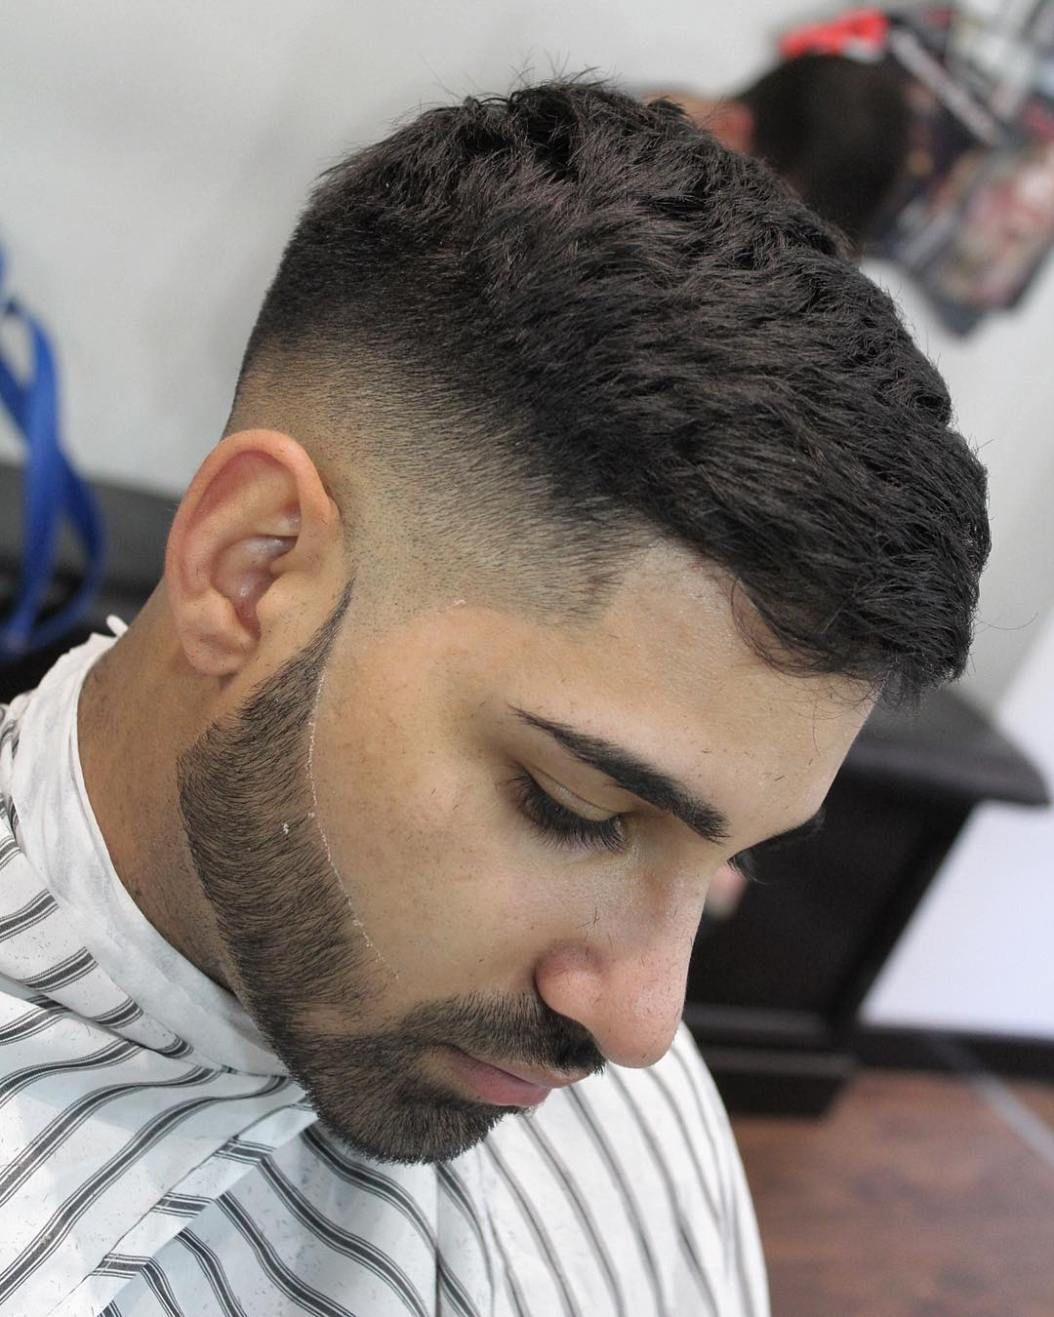 Barber Dylan F Mens Haircuts For Short Thick Hair Mid Fade Short Beard Latest Hairstyles 2020 New Hair Trends Top Hairstyles Thick Hair Styles Mens Haircuts Short Short Hairstyles For Thick Hair